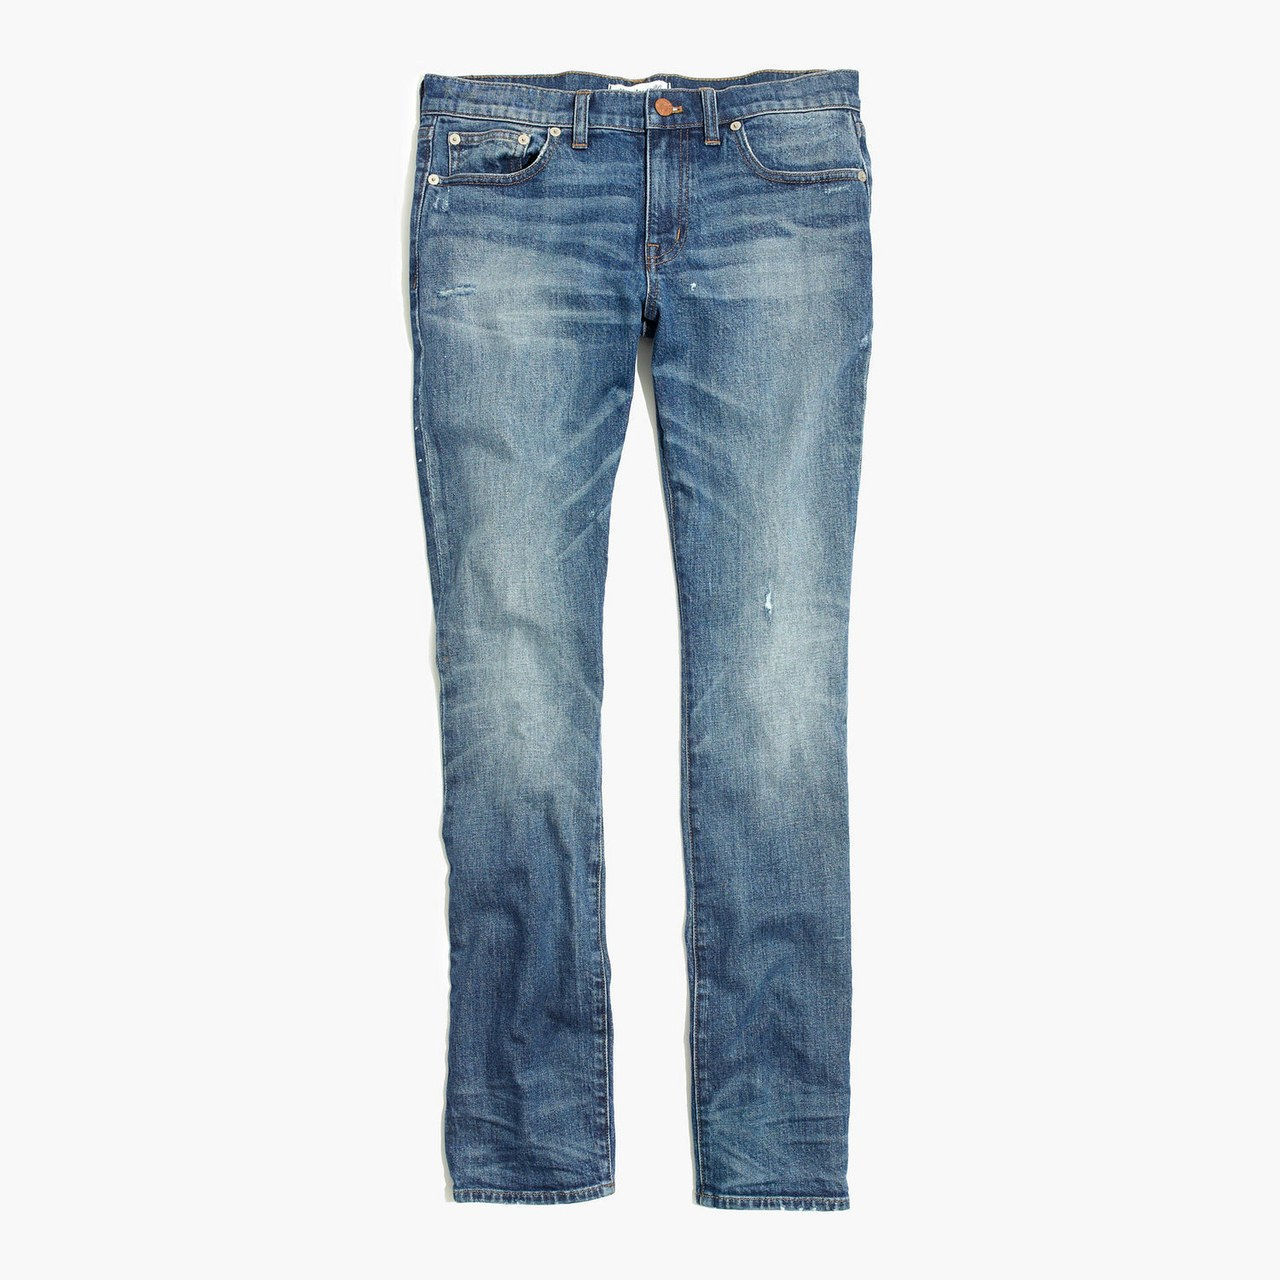 सर्दी weather denim madewell jeans